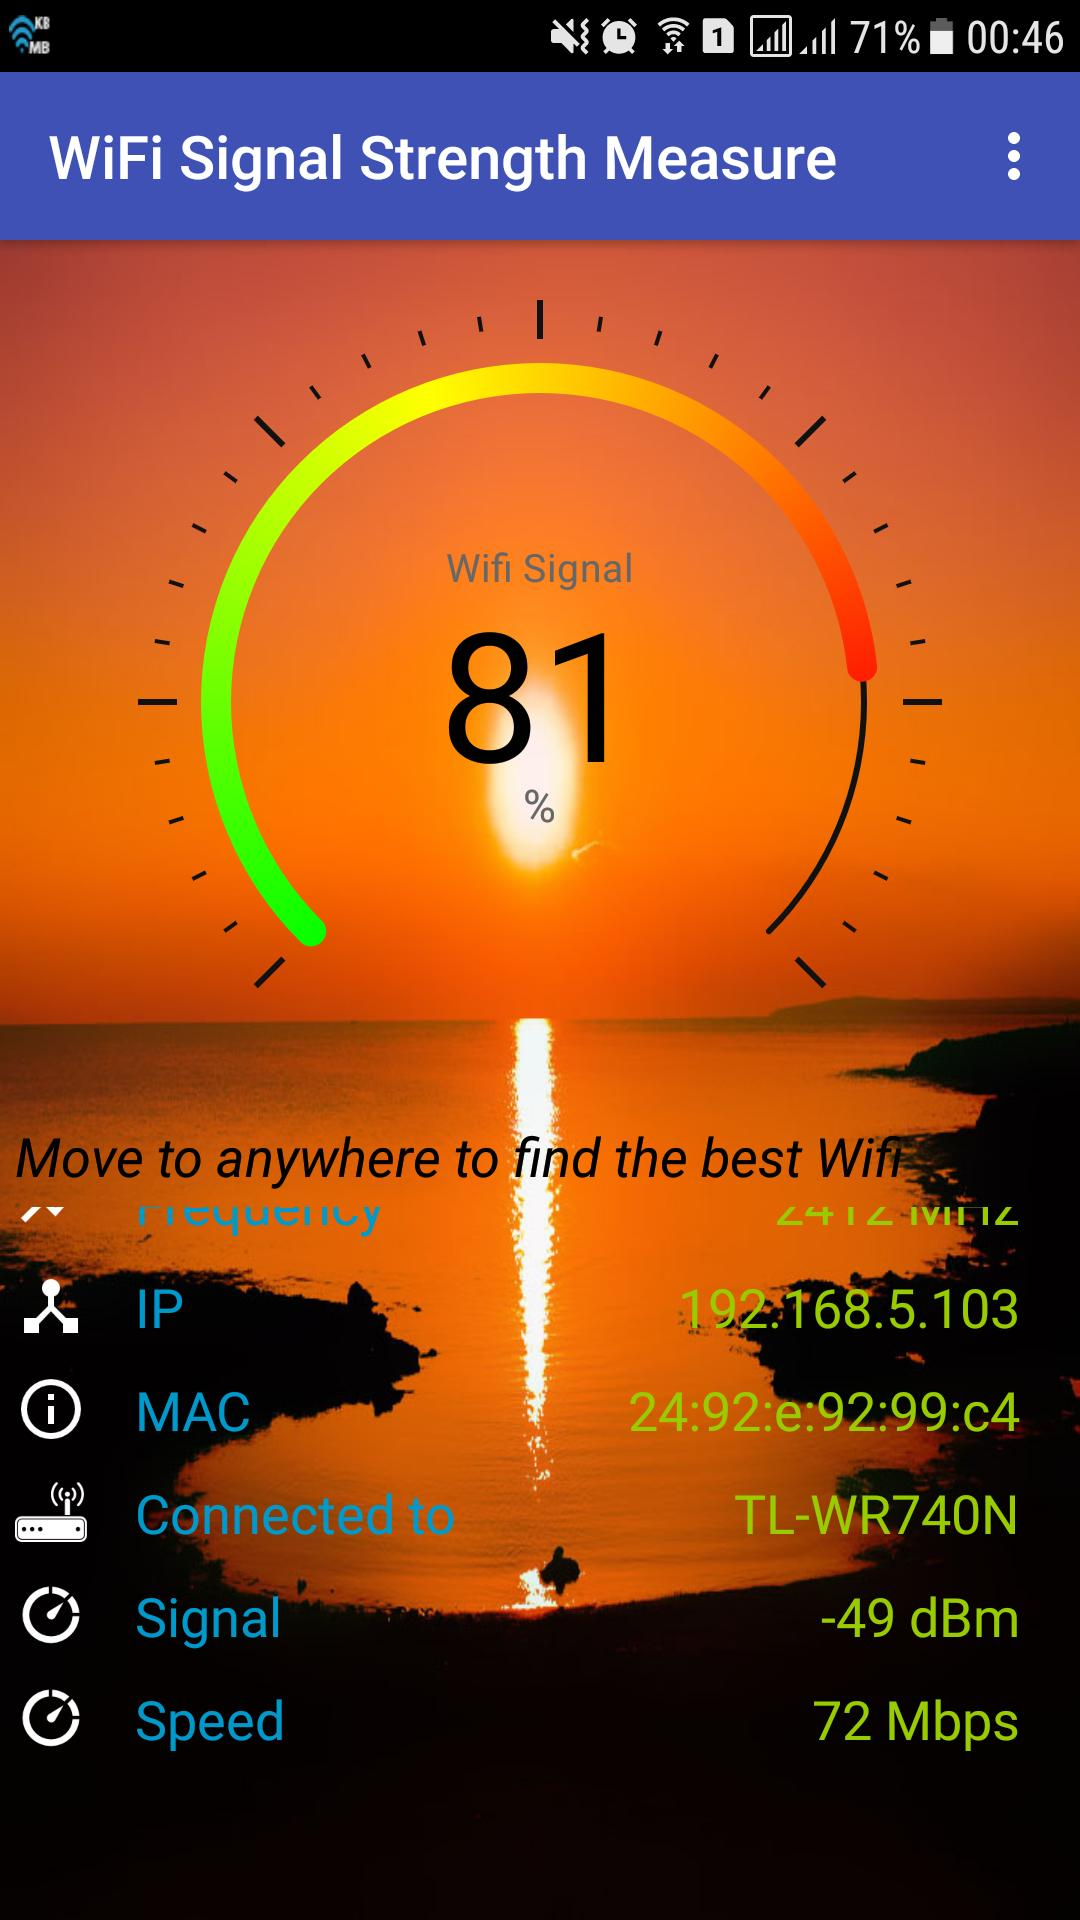 WiFi Signal Strength Measure for Android - APK Download